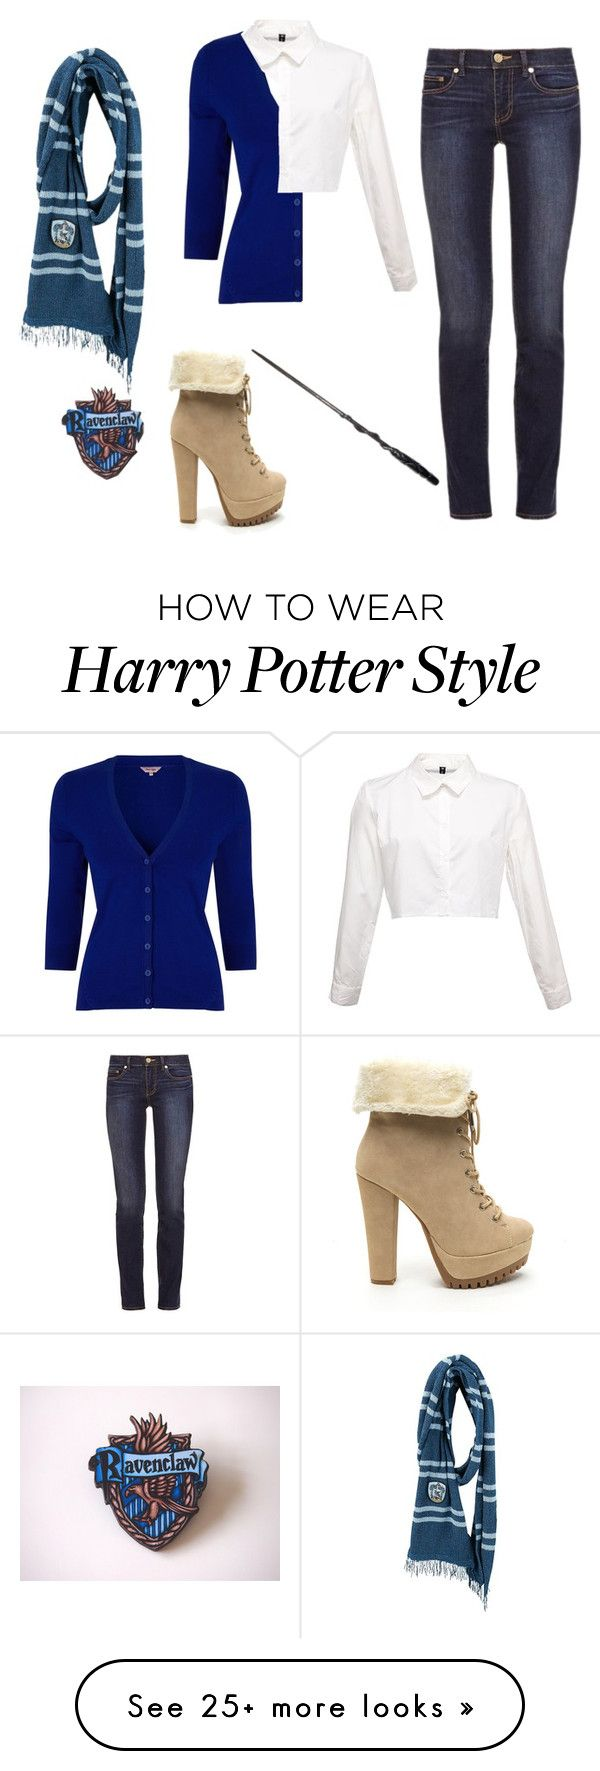 """Ravenclaw"" by bandumb on Polyvore featuring Phase Eight, Tory Burch, harrypotter, hogwarts and ravenclaw"